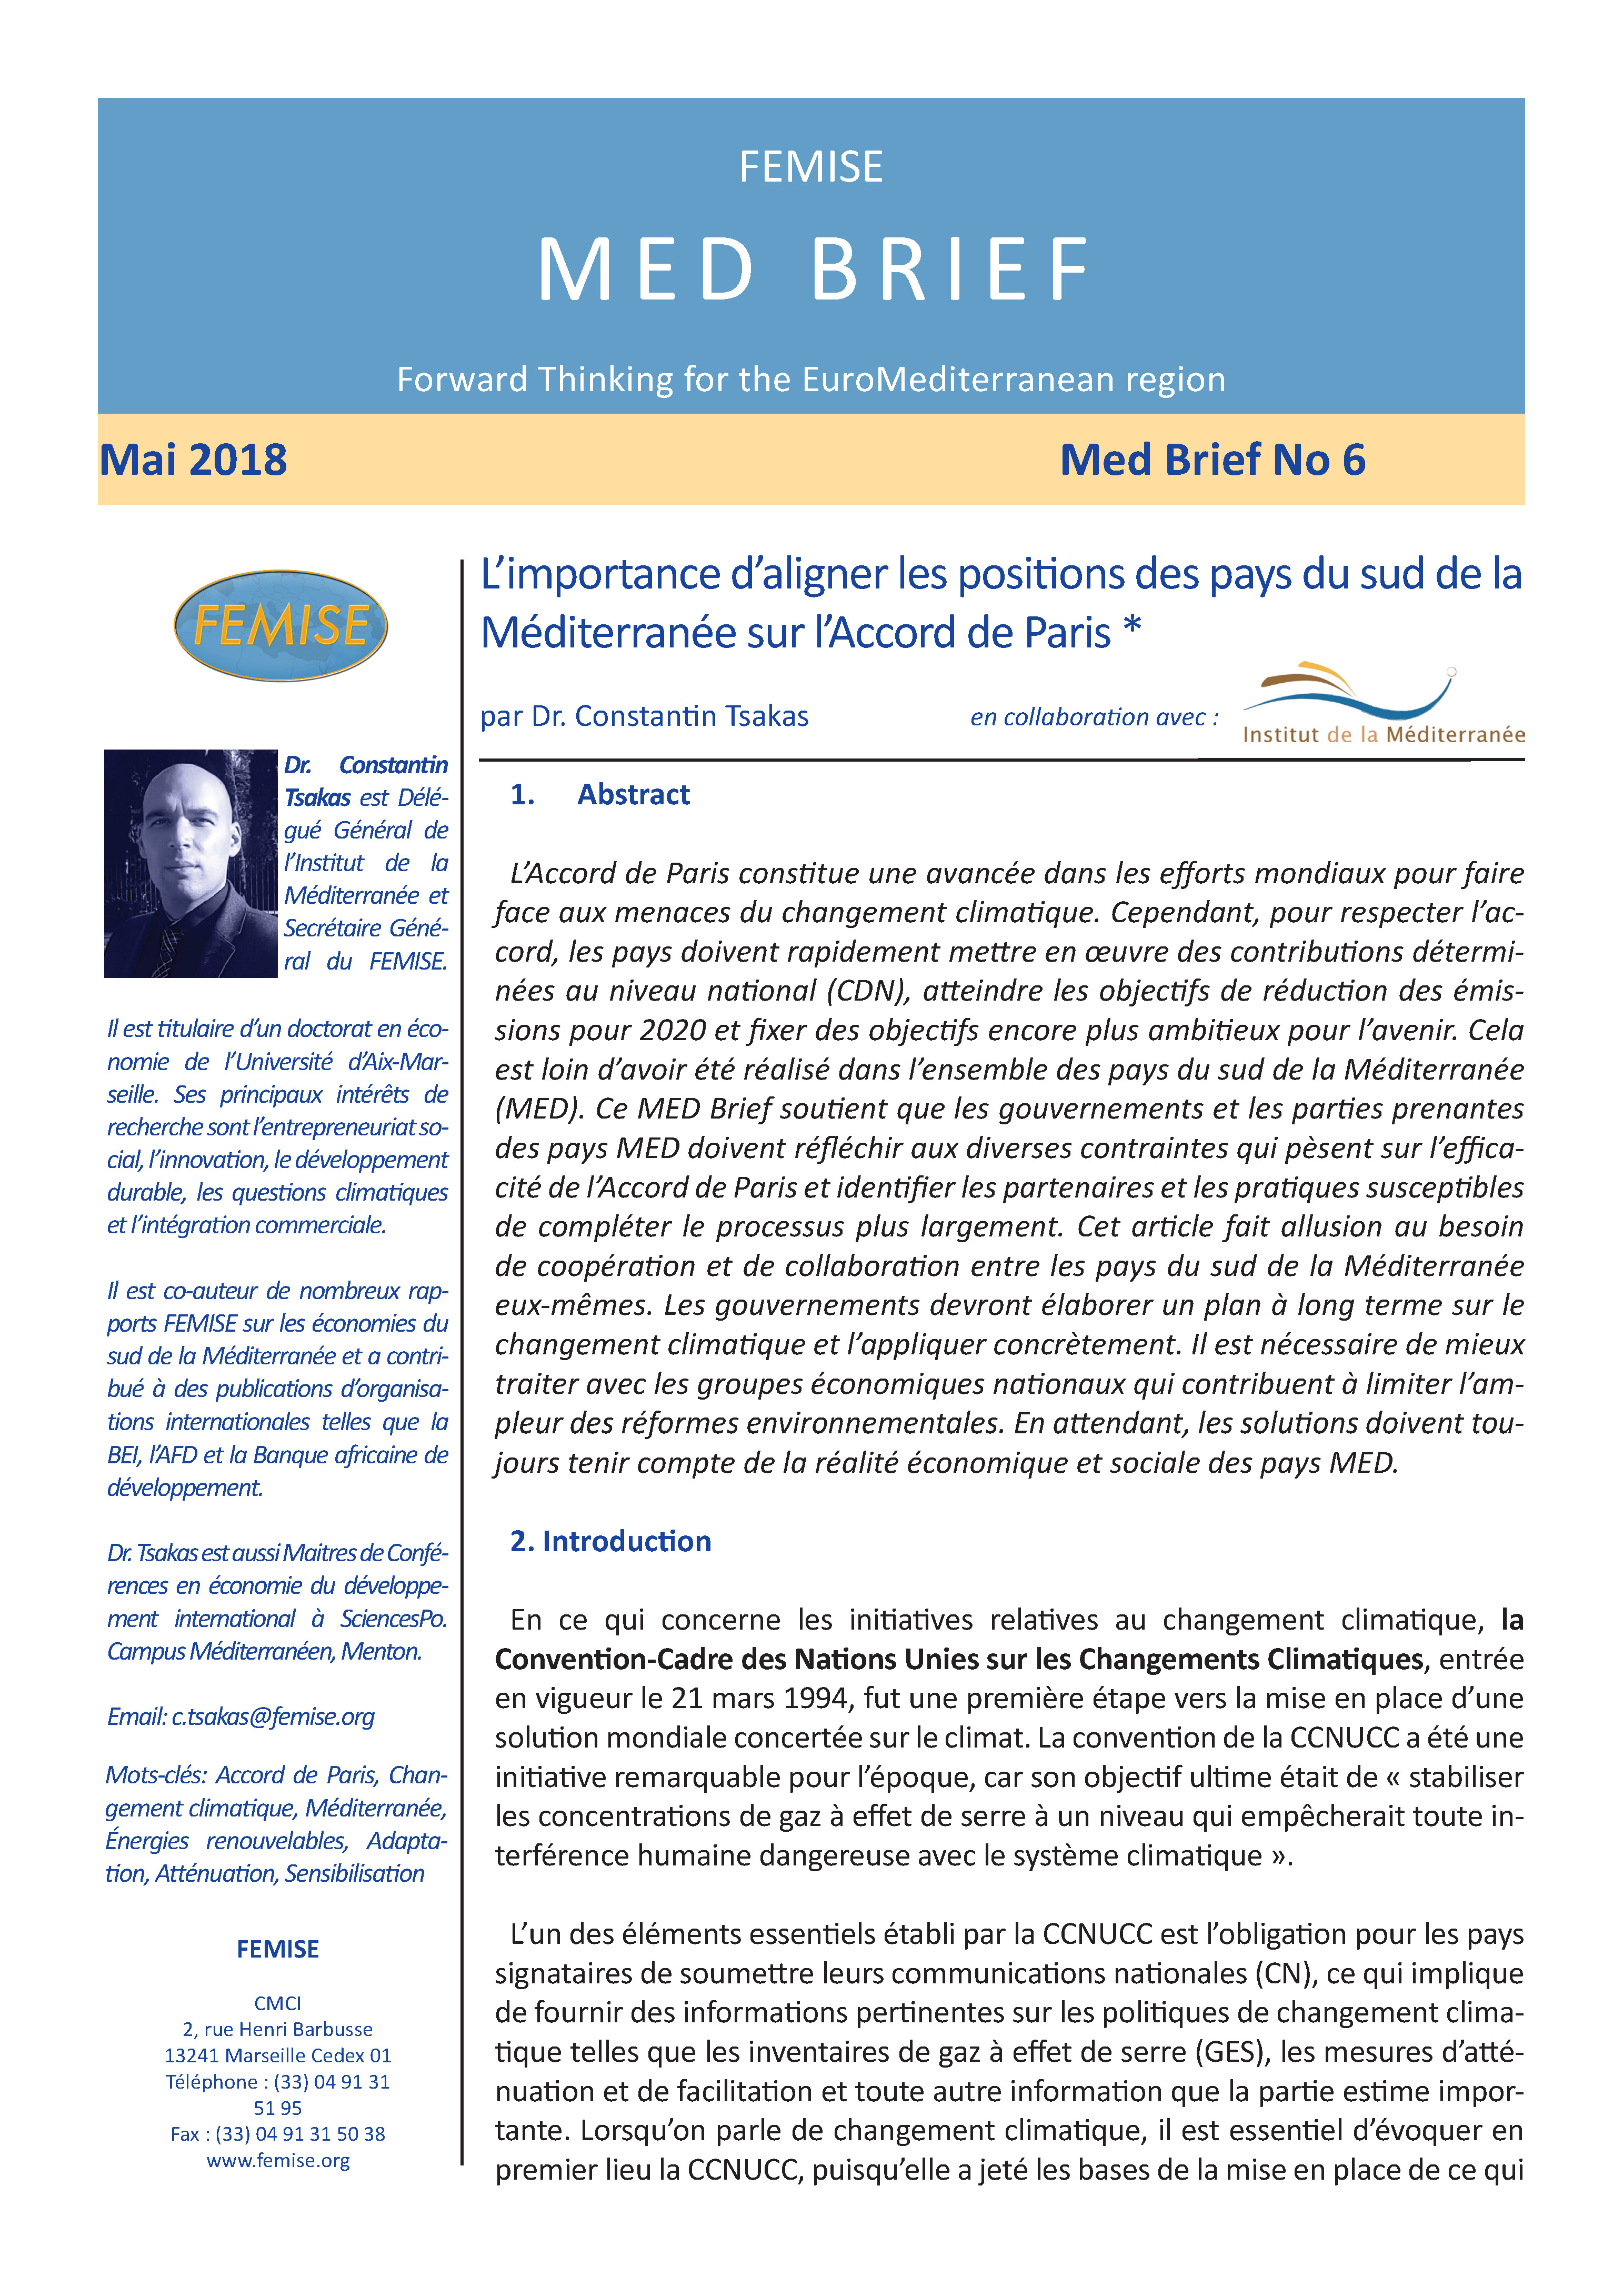 FEMISE MED BRIEF no6 : The Importance of Reconciling South MED ...